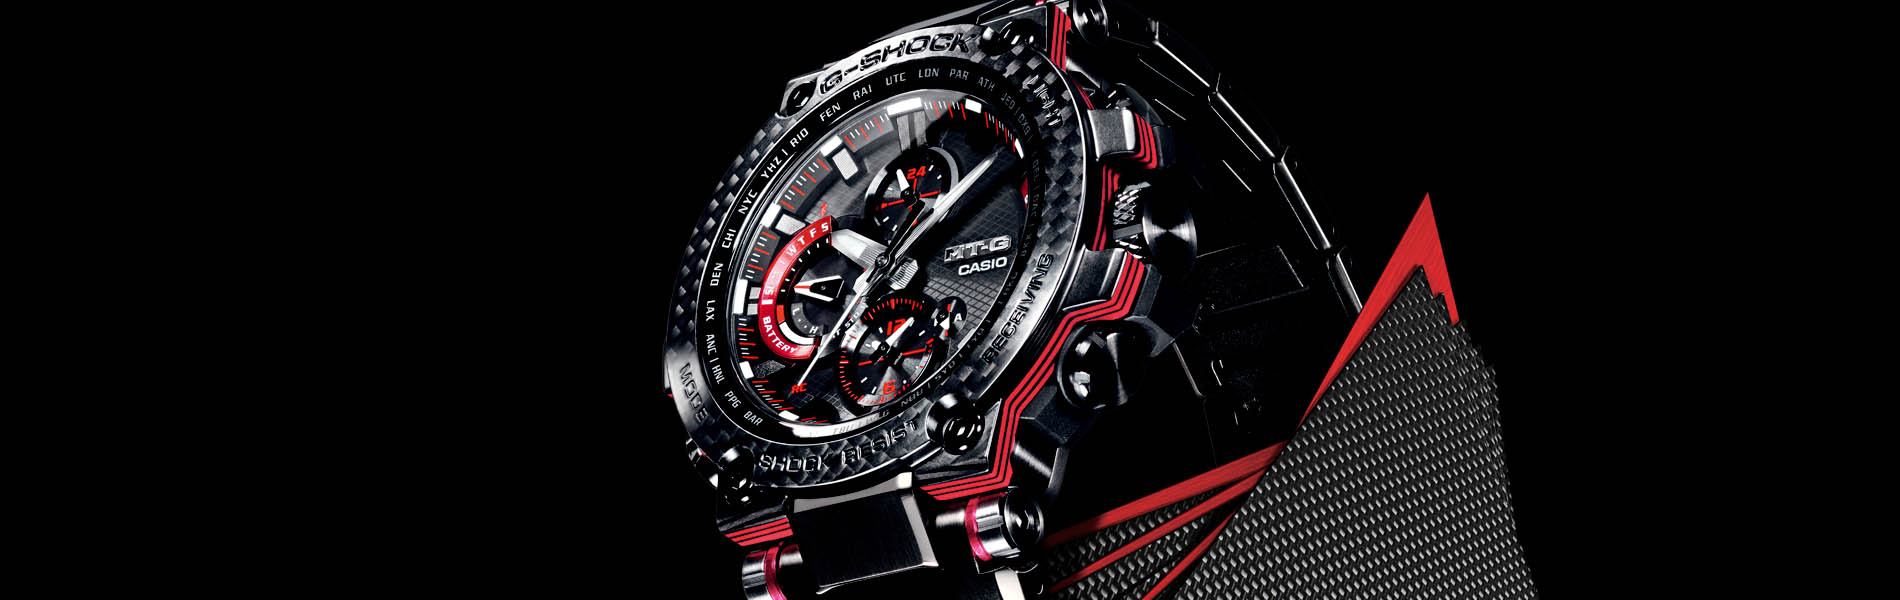 G Shock Watches By Casio Tough Waterproof Digital Analog